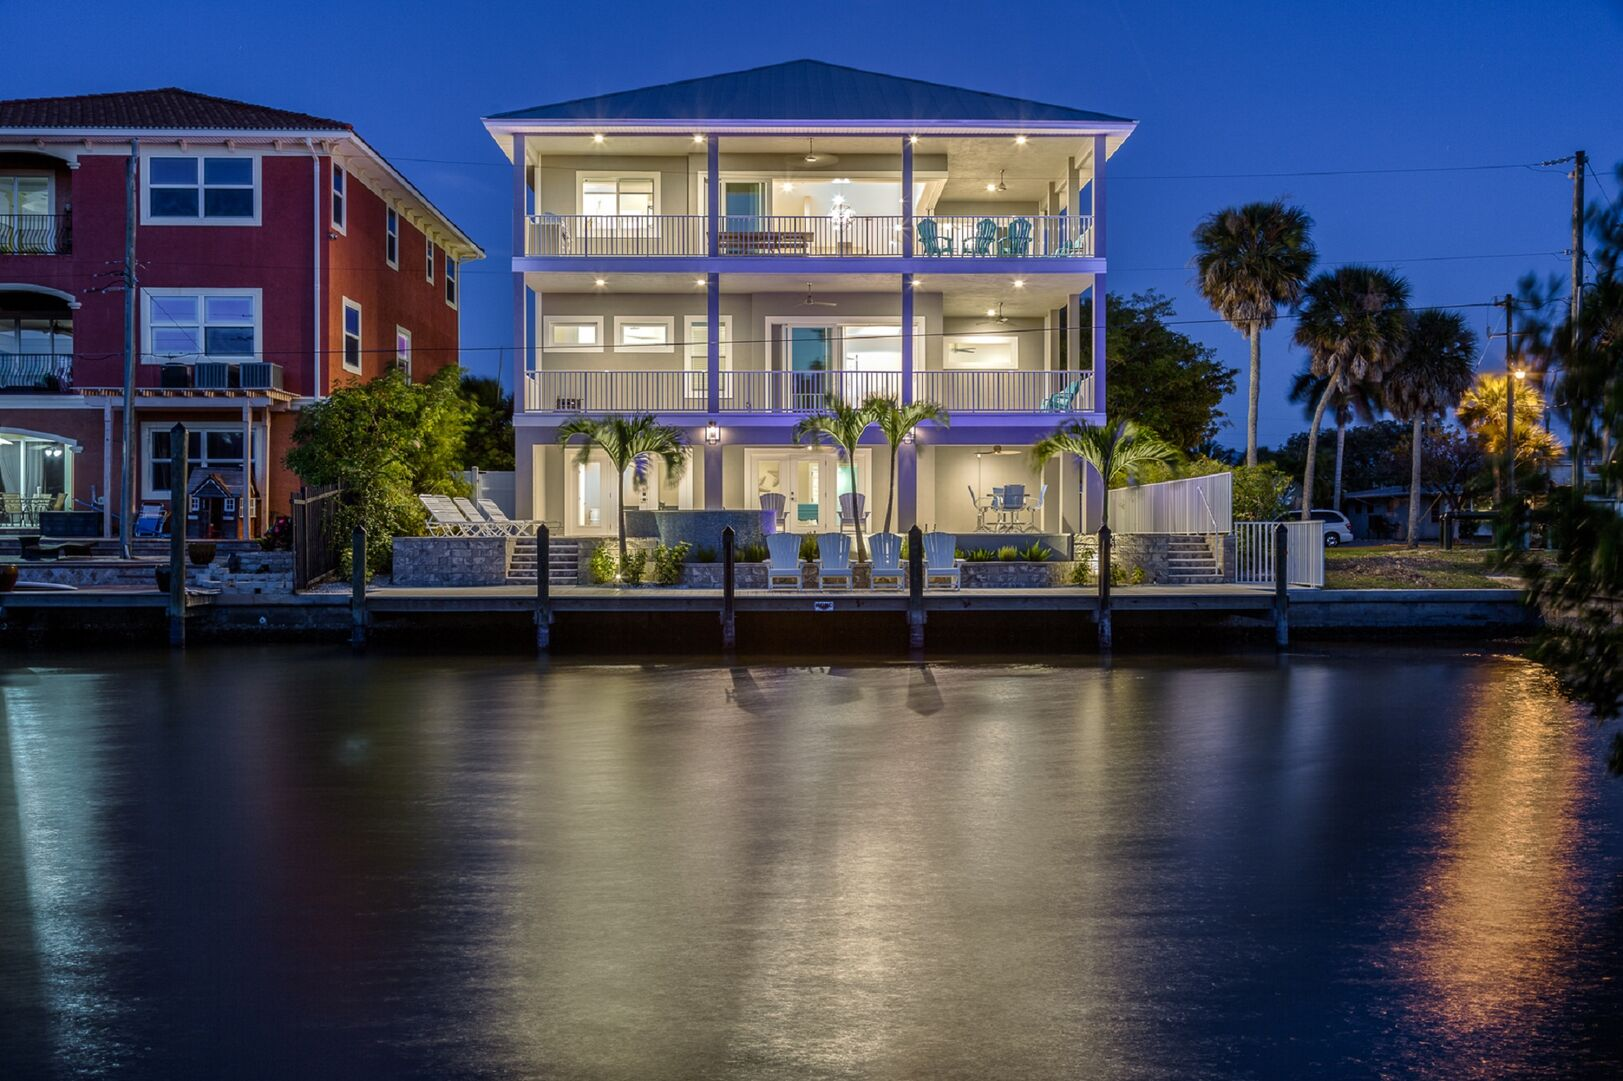 This vacation house for rent in Fort Myers FL as seen from across the bay, lit-up at night.